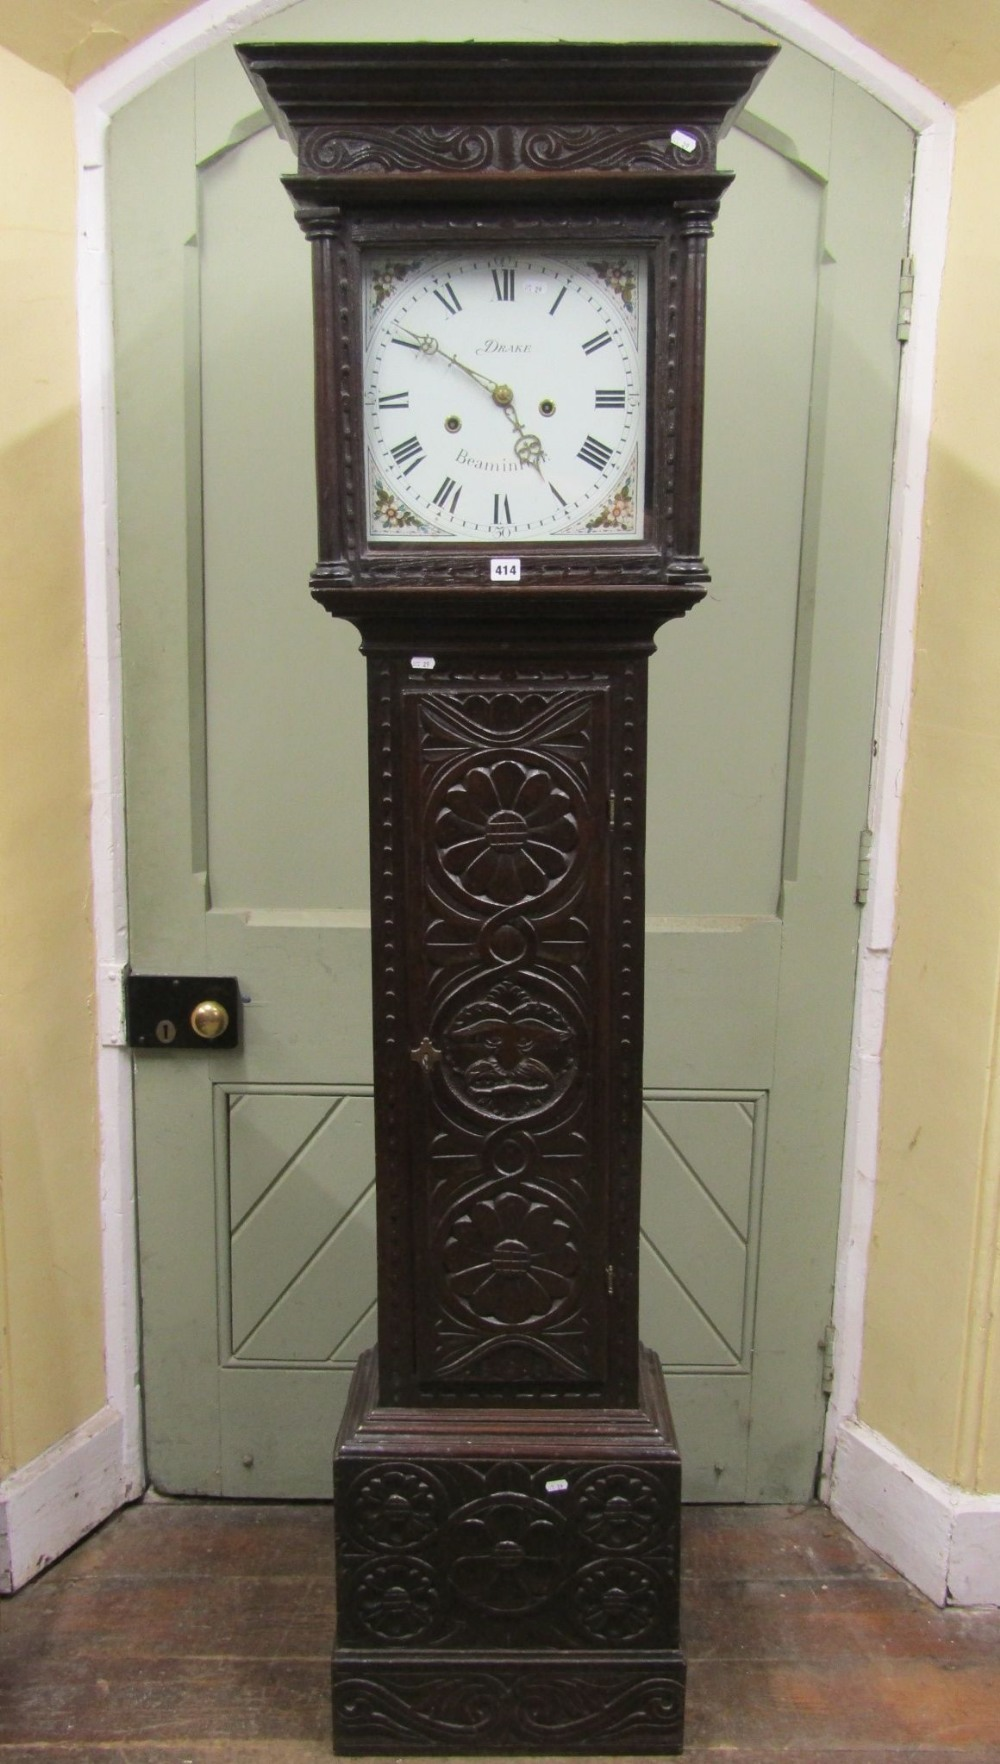 Lot 1451 - An early 19th century longcase ting tang clock, carved throughout with repeating geometric and other